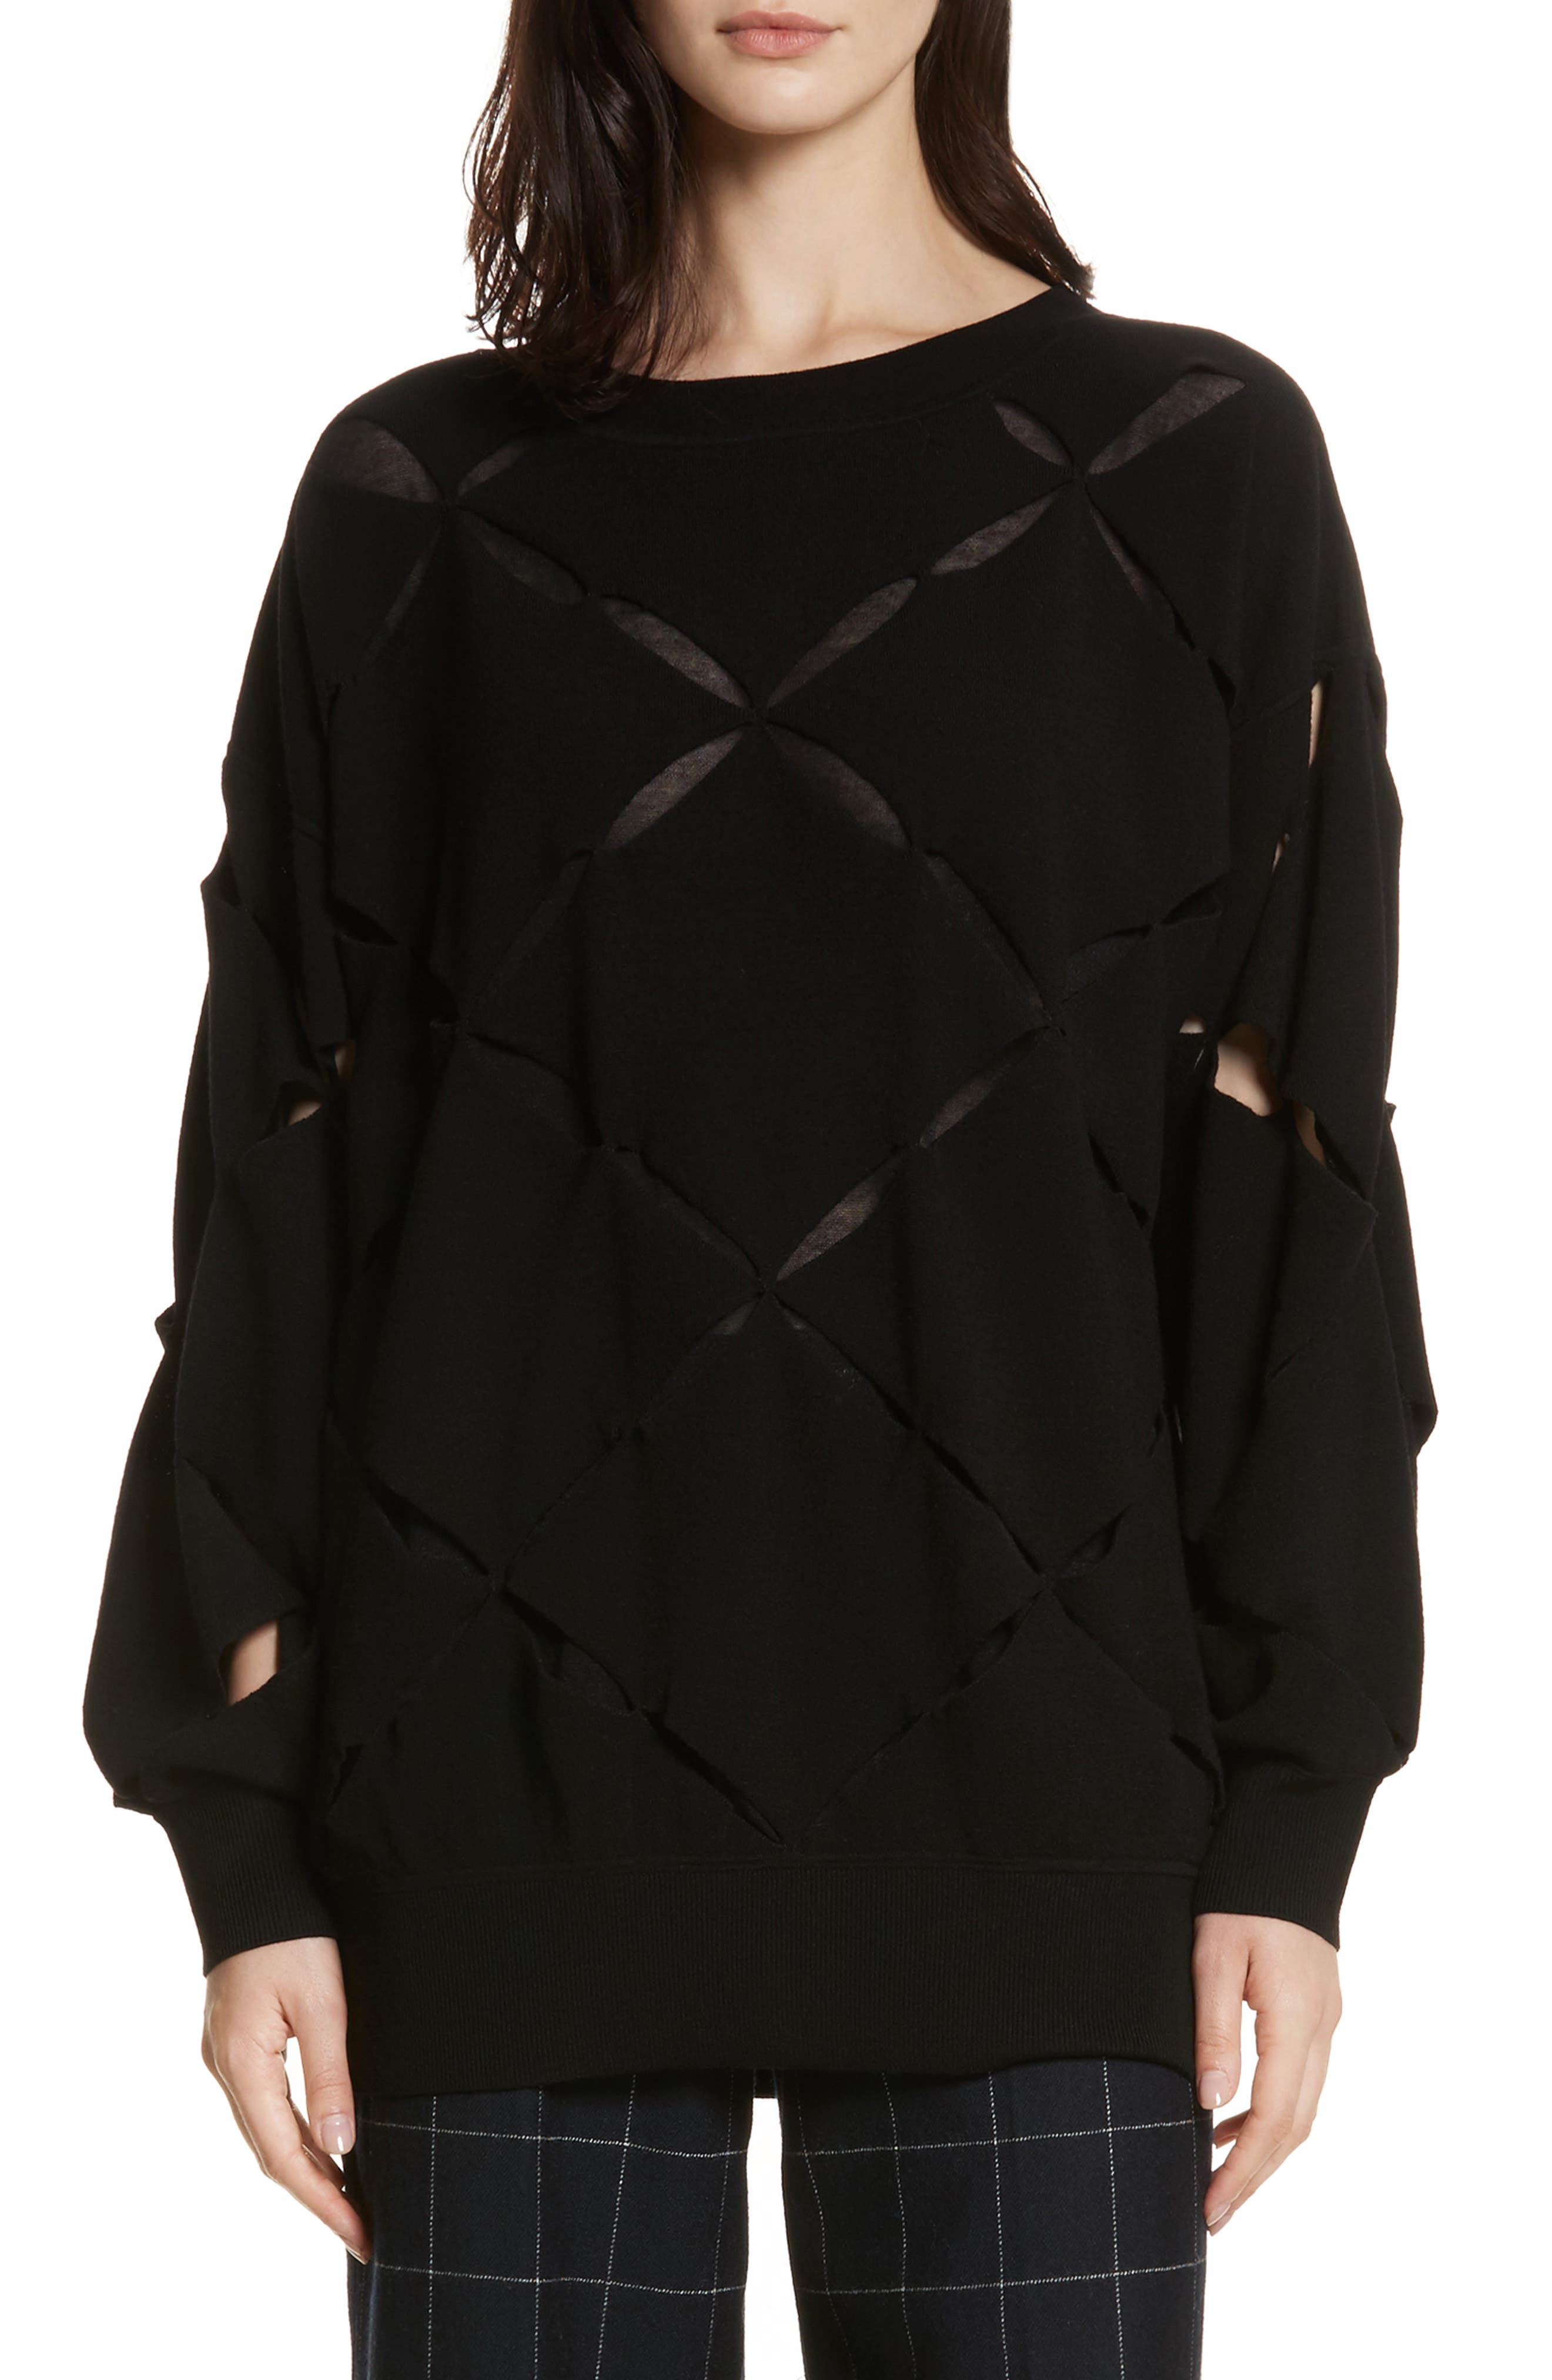 Roz Cutout Sweater,                             Main thumbnail 1, color,                             001